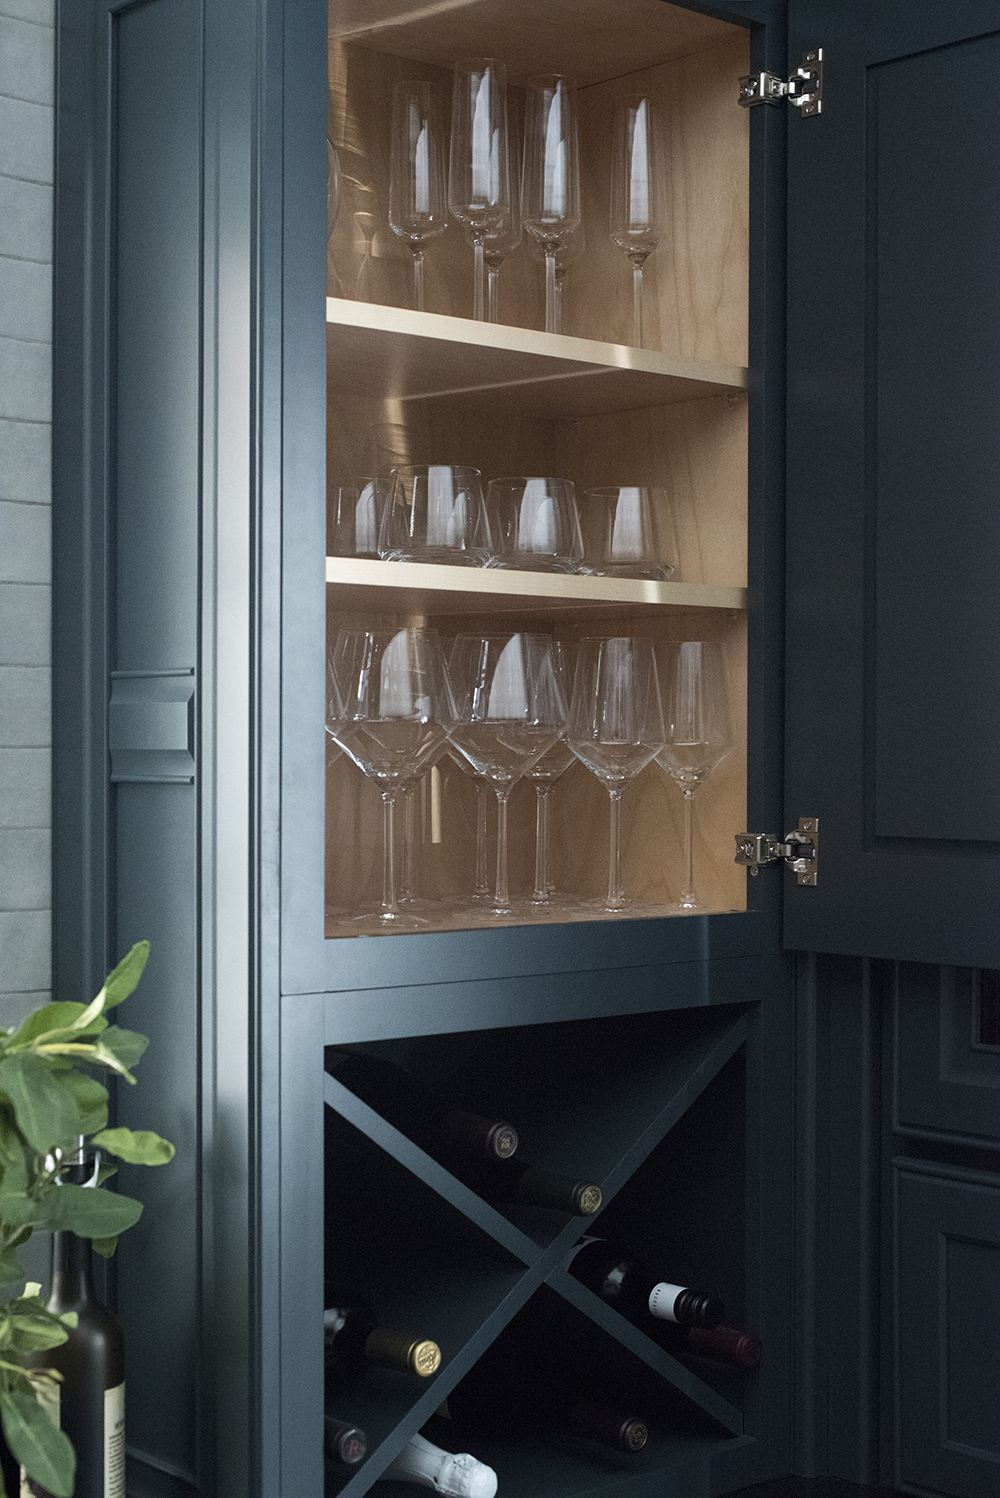 My Dishes, Glassware, & Kitchenware (+A Printable Registry Checklist) - roomfortuesday.com